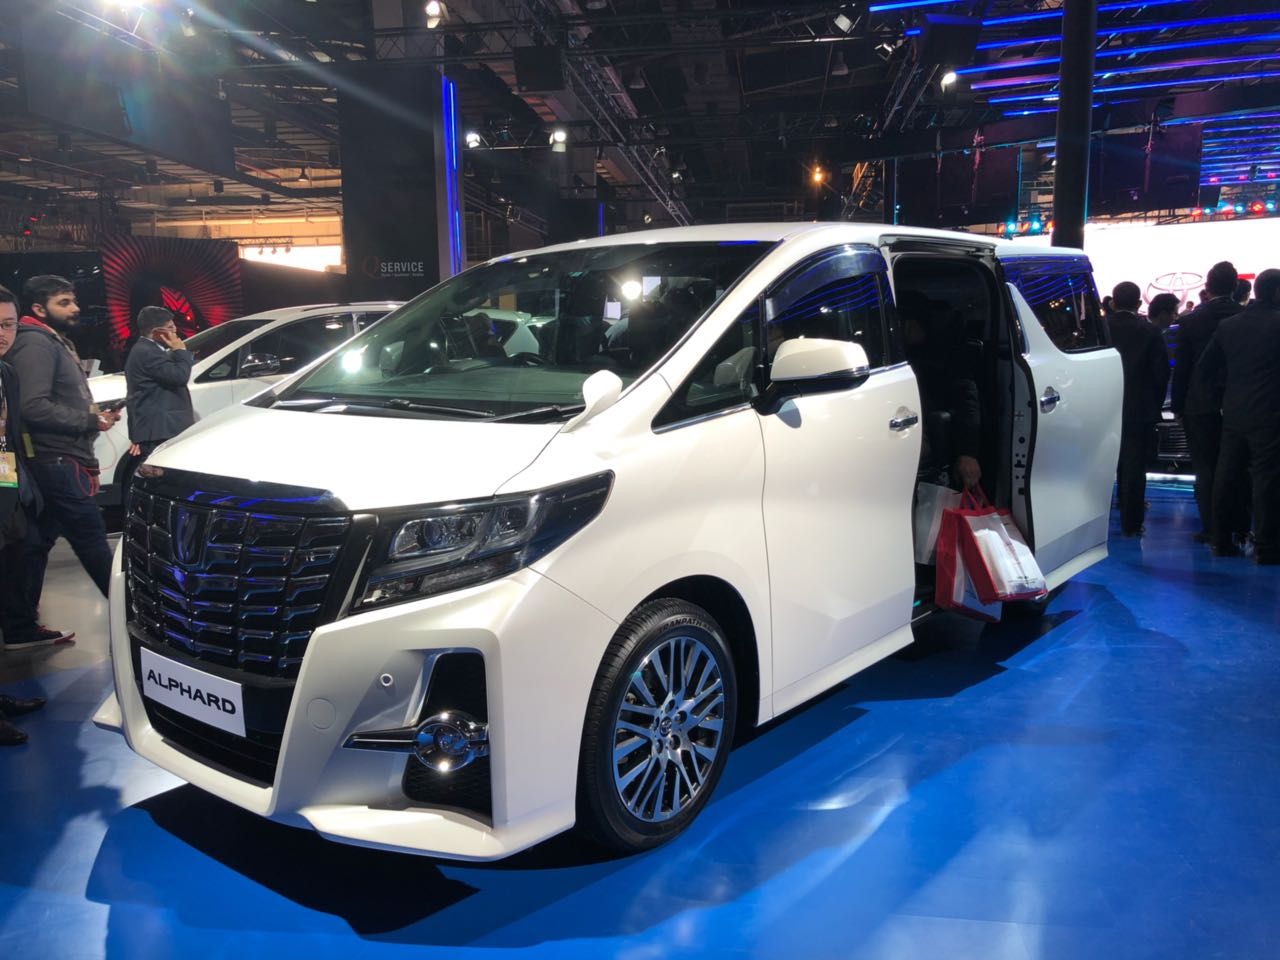 Toyota Alphard India Debut Takes Place At Auto Expo 2018